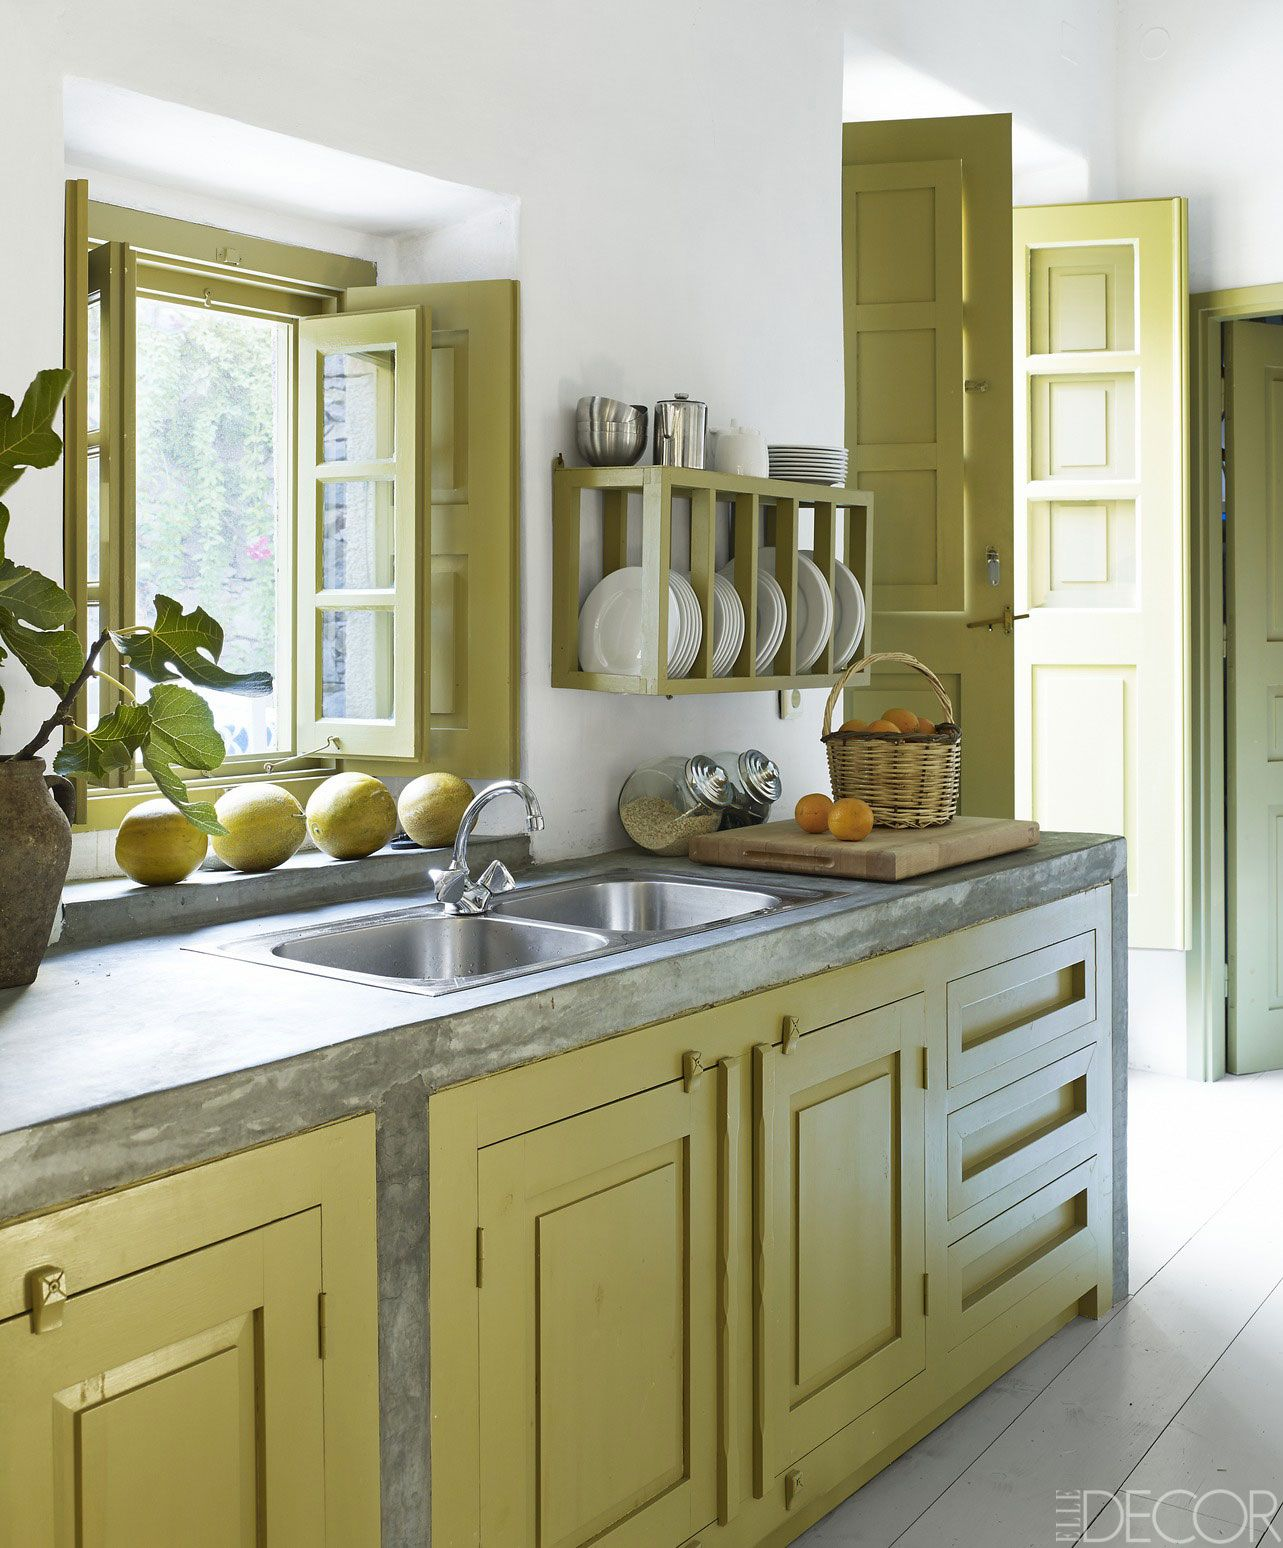 Small Kitchen Design 50 Small Kitchen Design Ideas  Decorating Tiny Kitchens